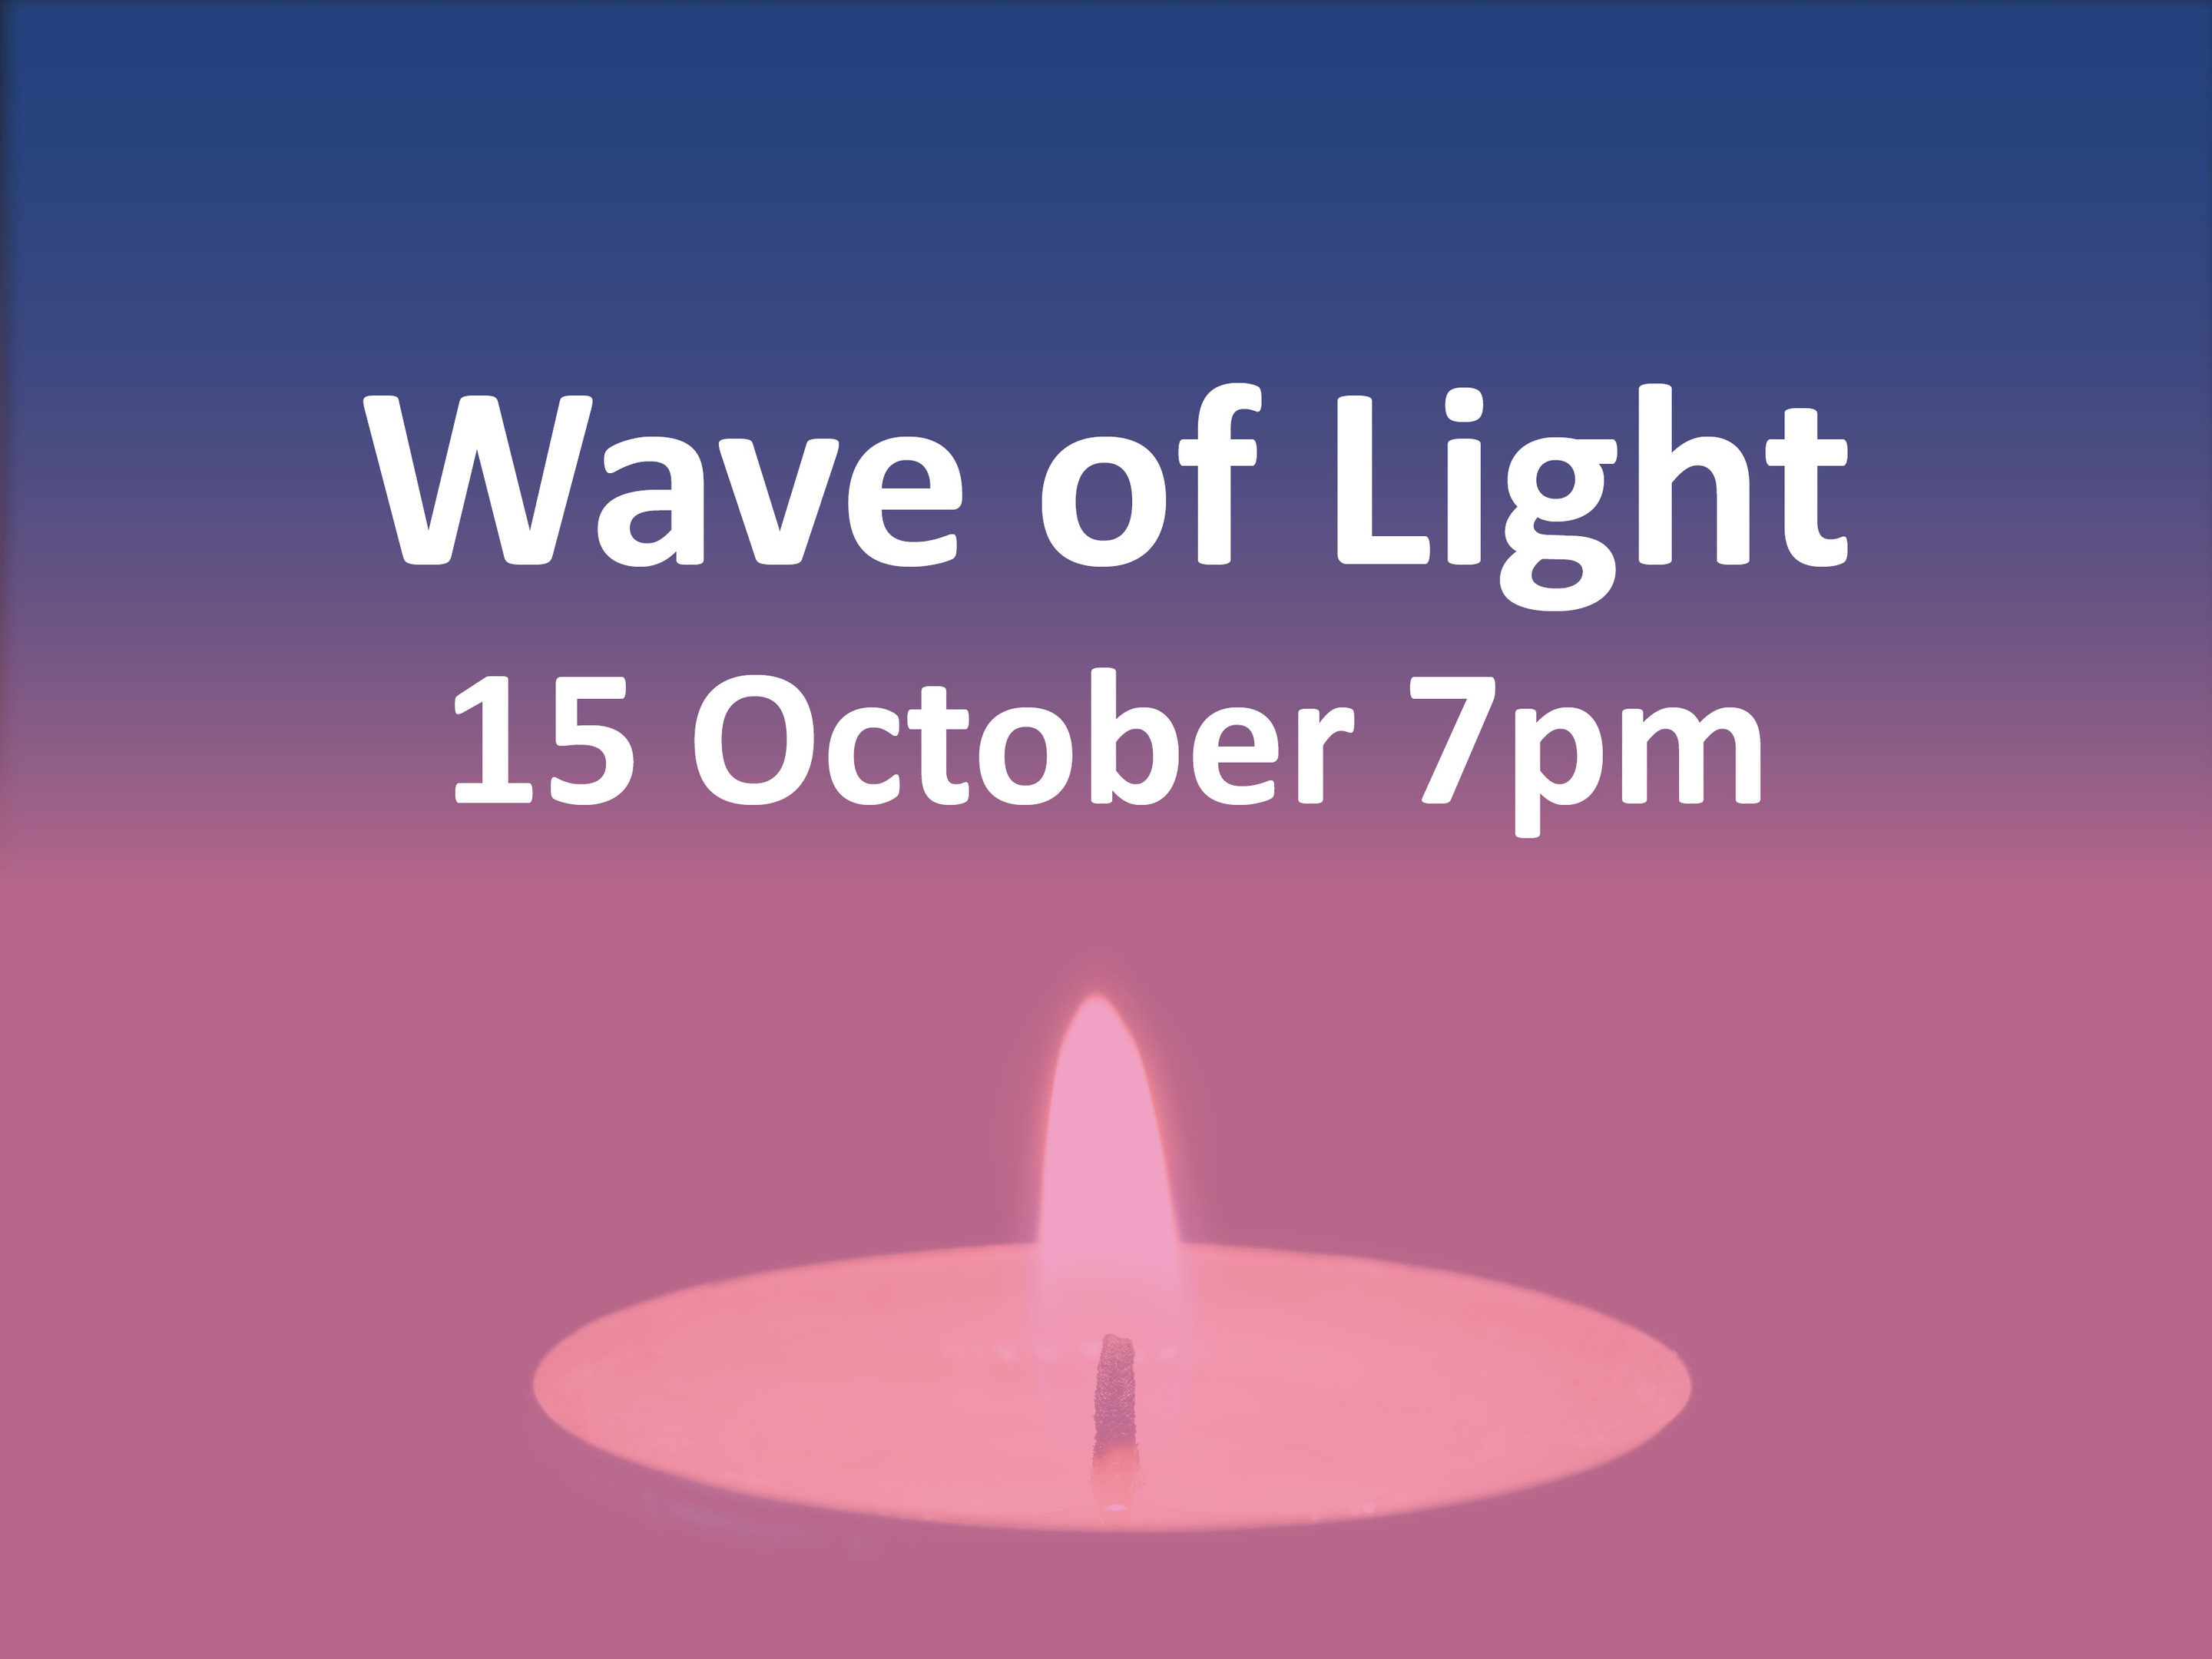 Baby Loss Awareness week will end with the #Wave of Light' on the 15th October